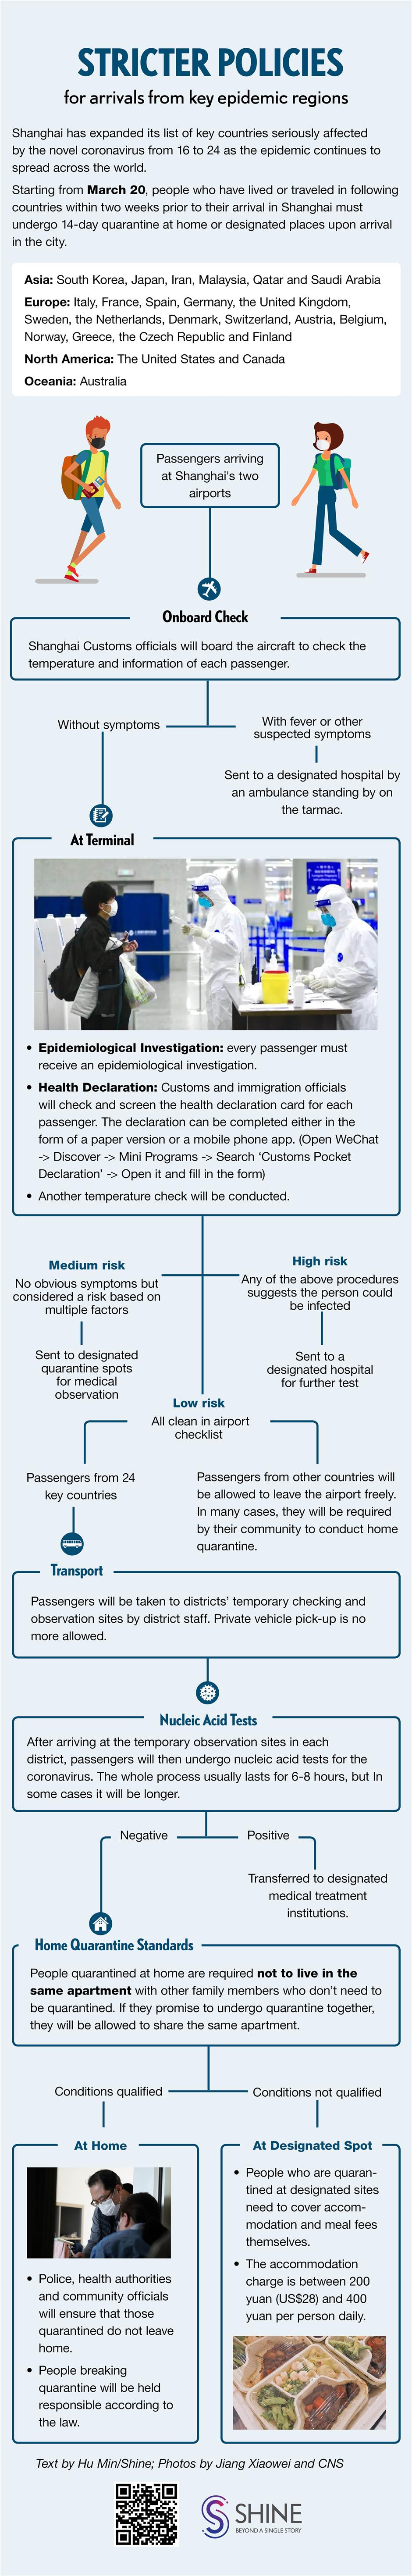 Illustrated explainer on new policies for air passengers